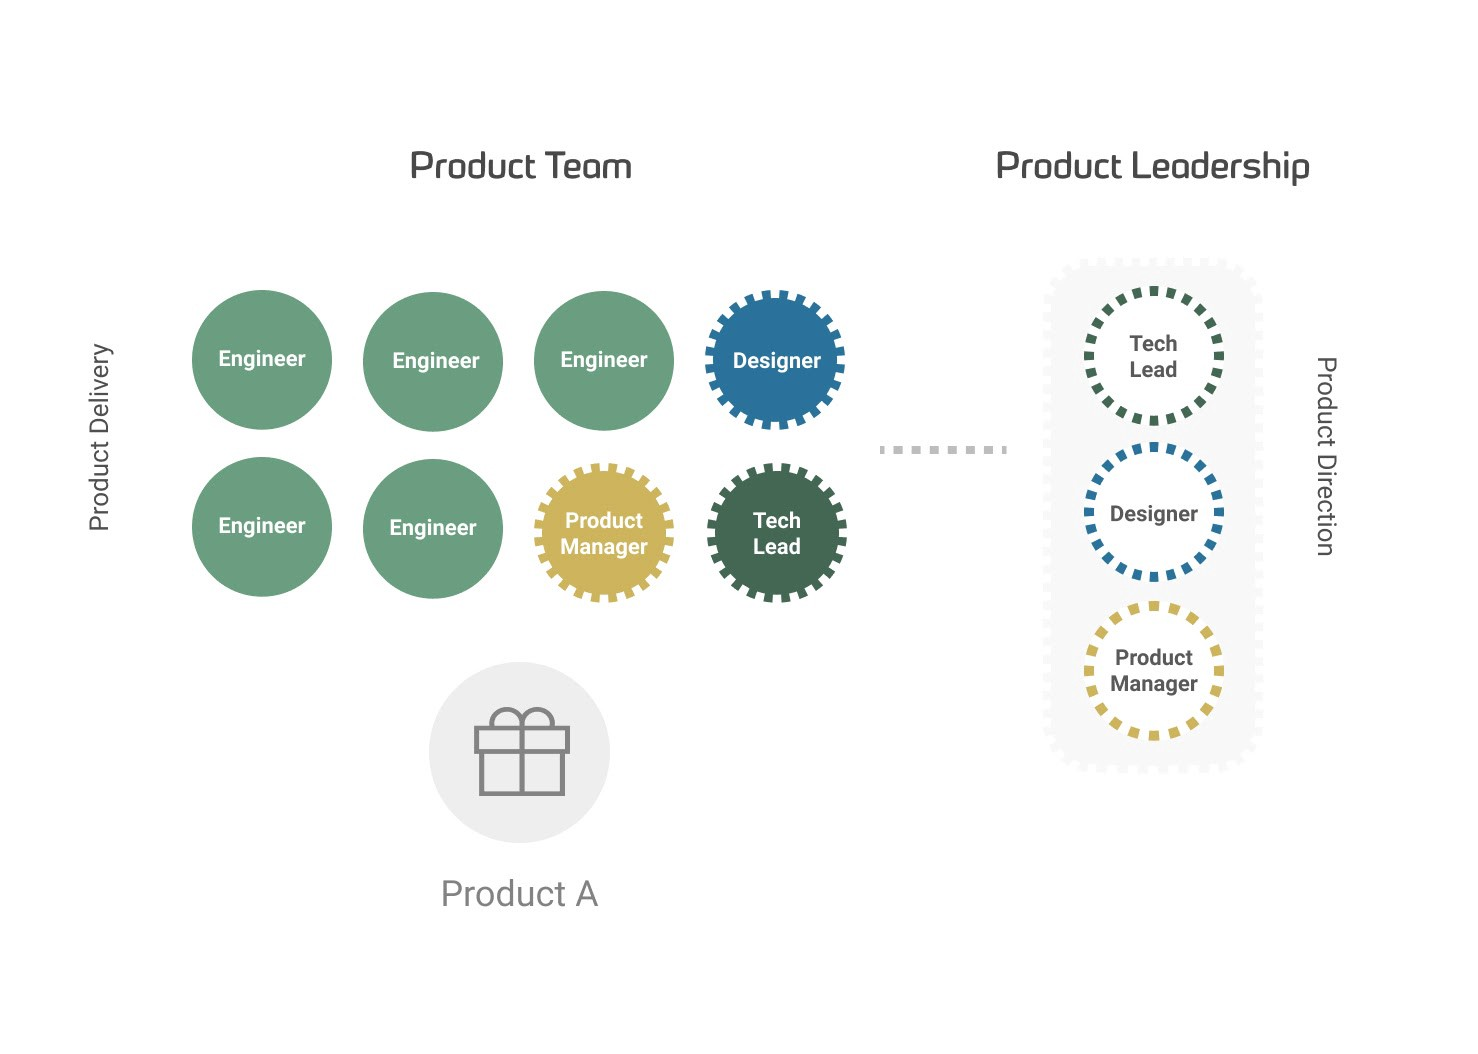 Illustration of Product Leadership Team (designer, product manager and technical lead) as part of wider cross-functional team.